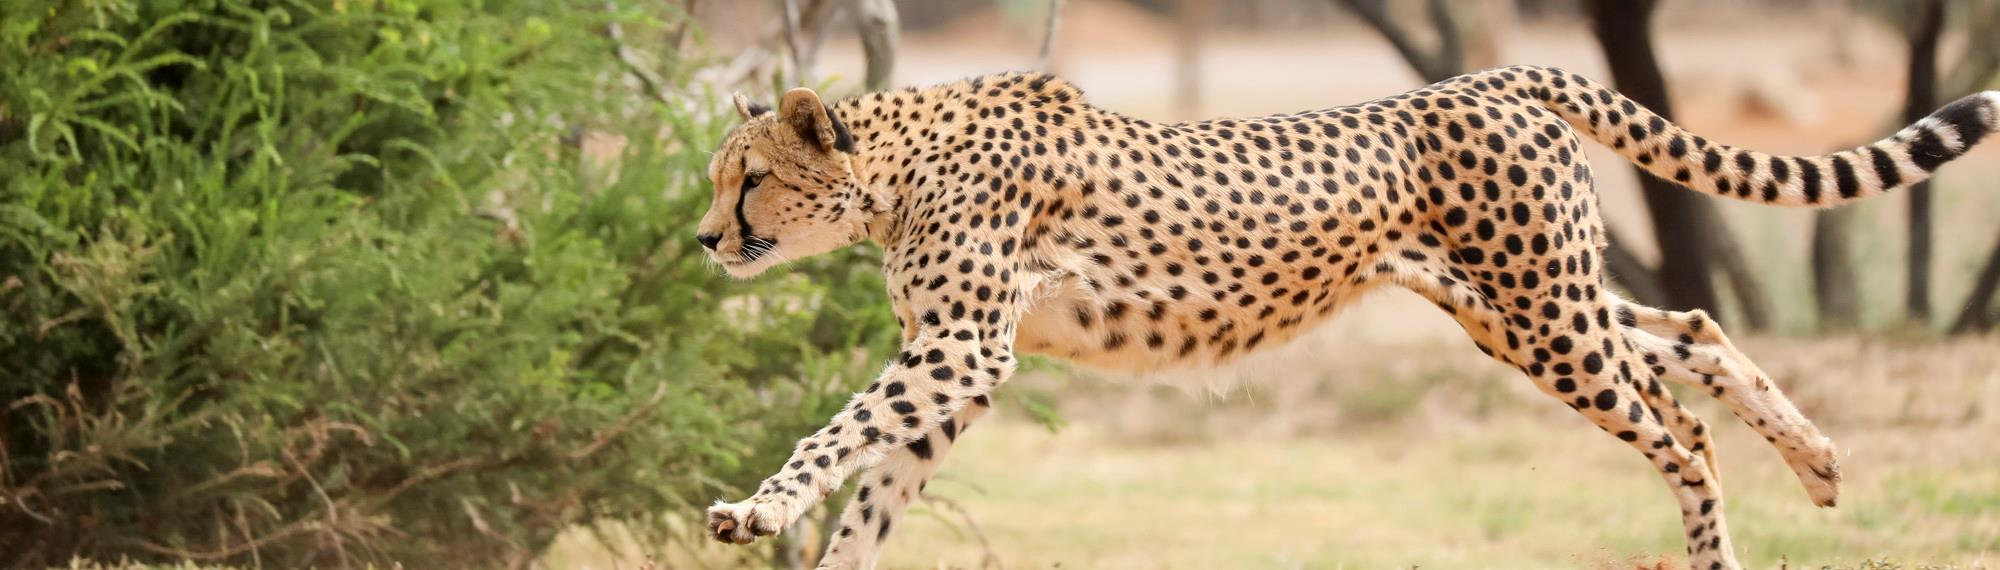 Side view of Kulinda the cheetah running towards the left with a shrub behind her.